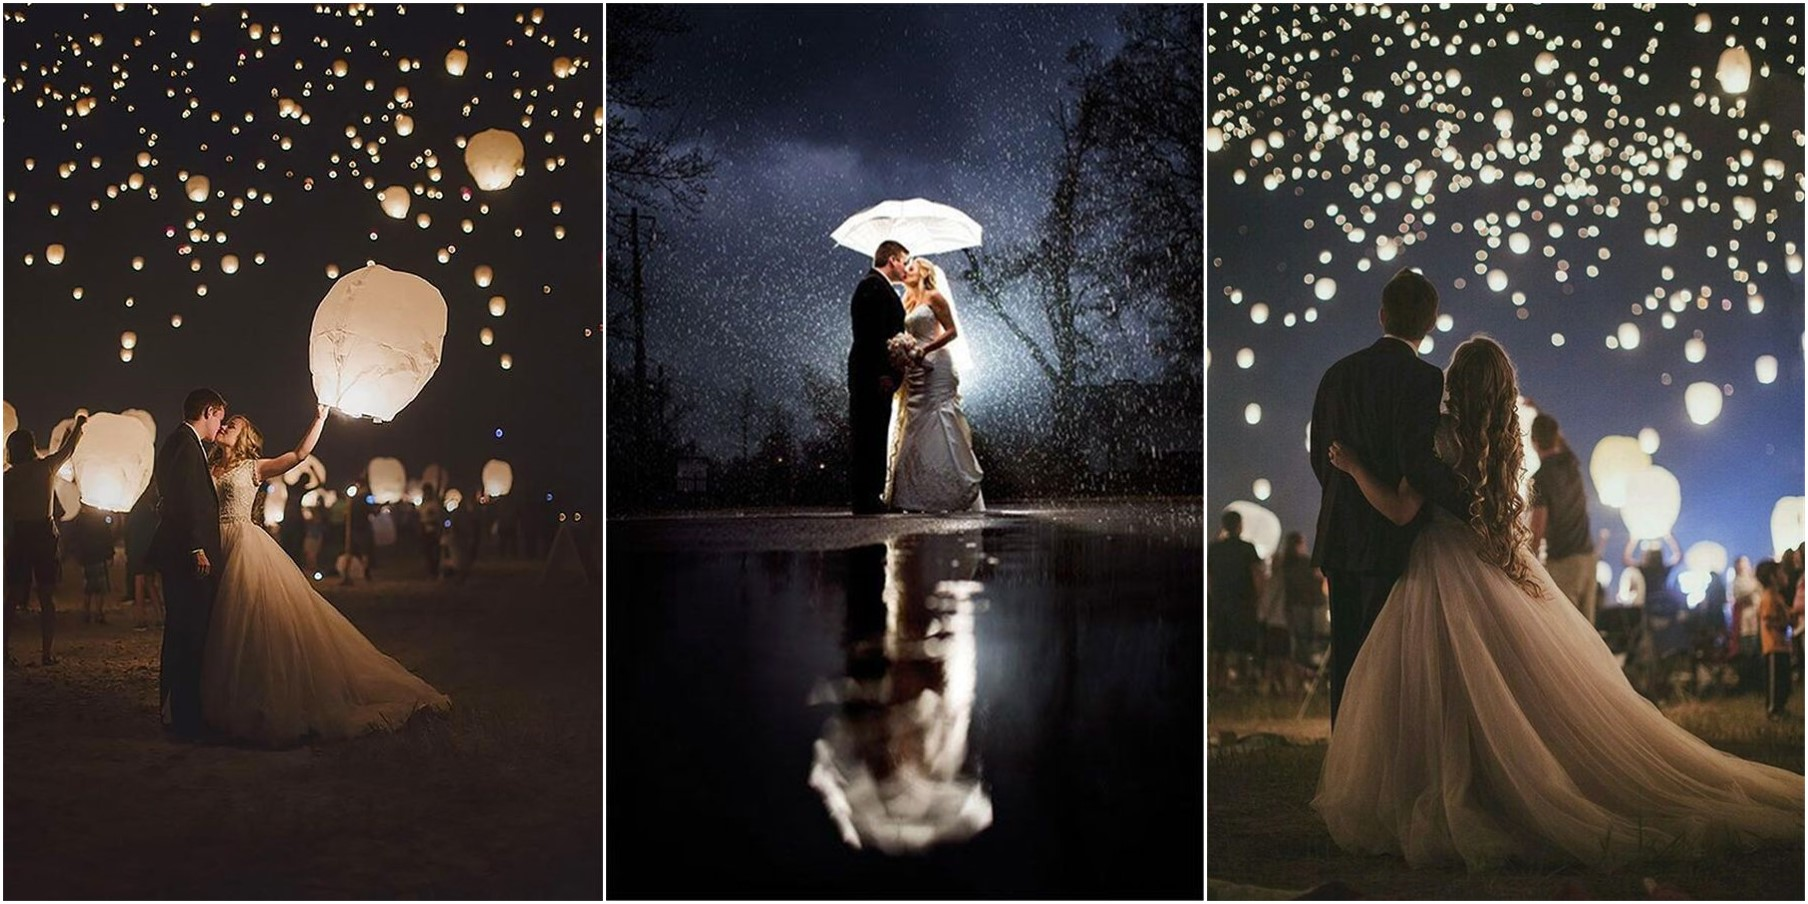 20 romantic night wedding photo ideas you never wonna miss for Ideas for wedding pictures